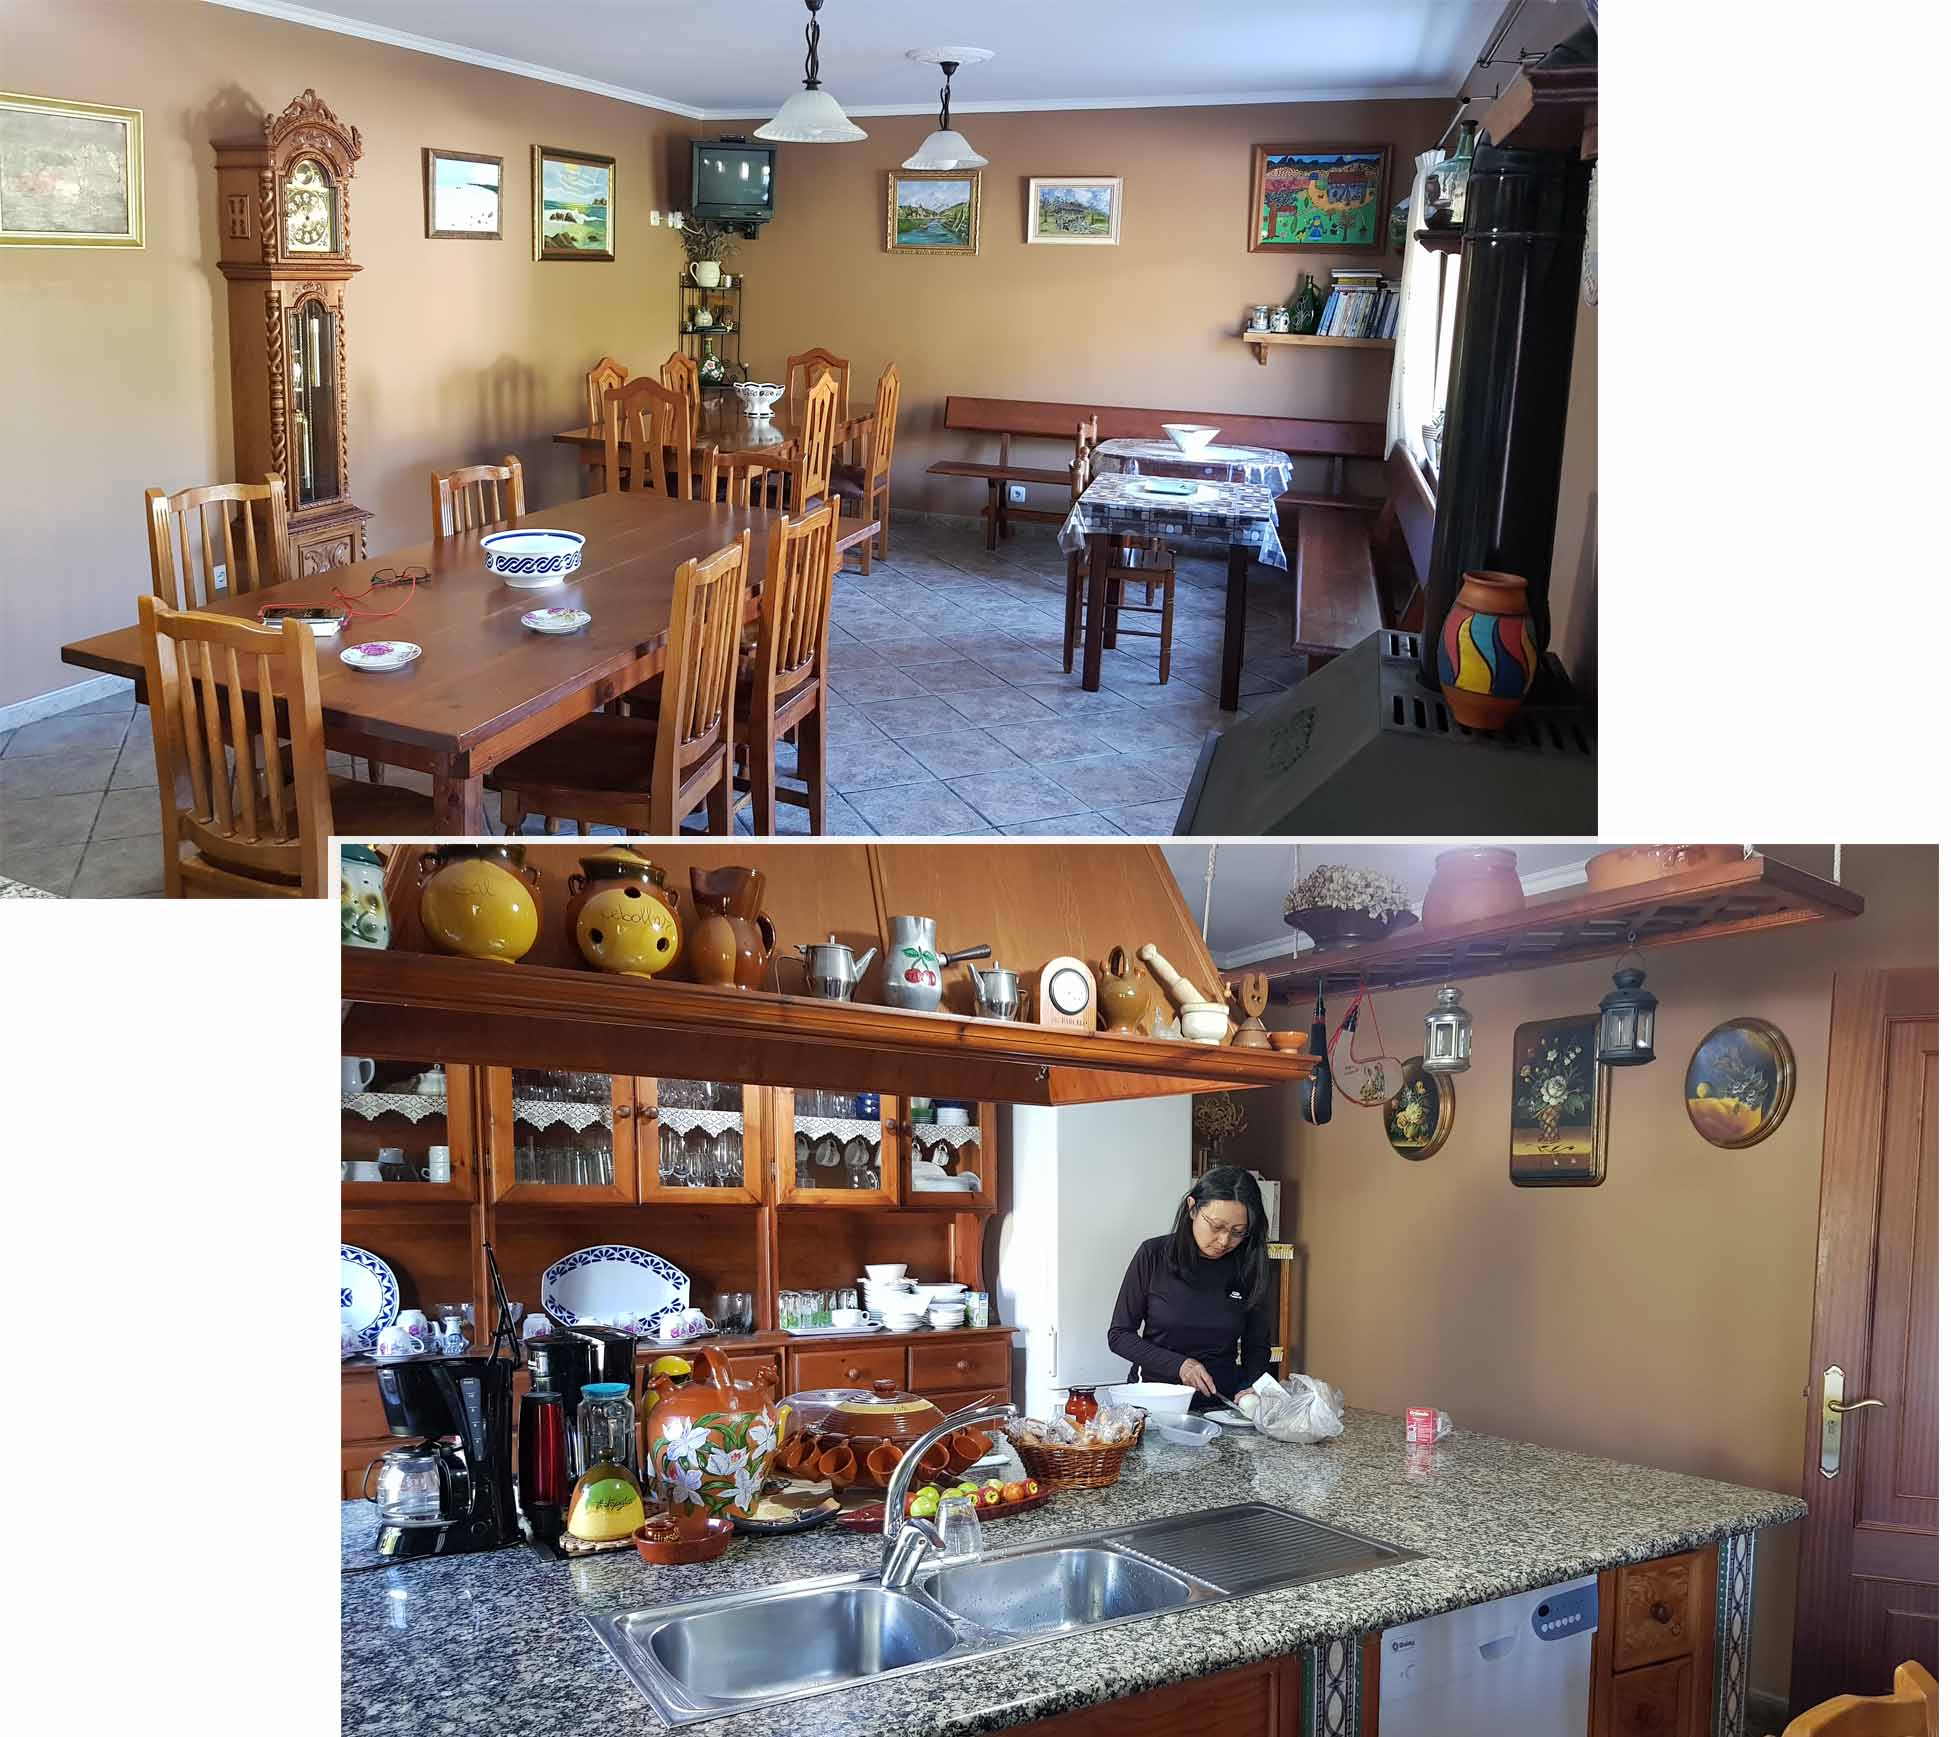 Shared kitchen and dining room